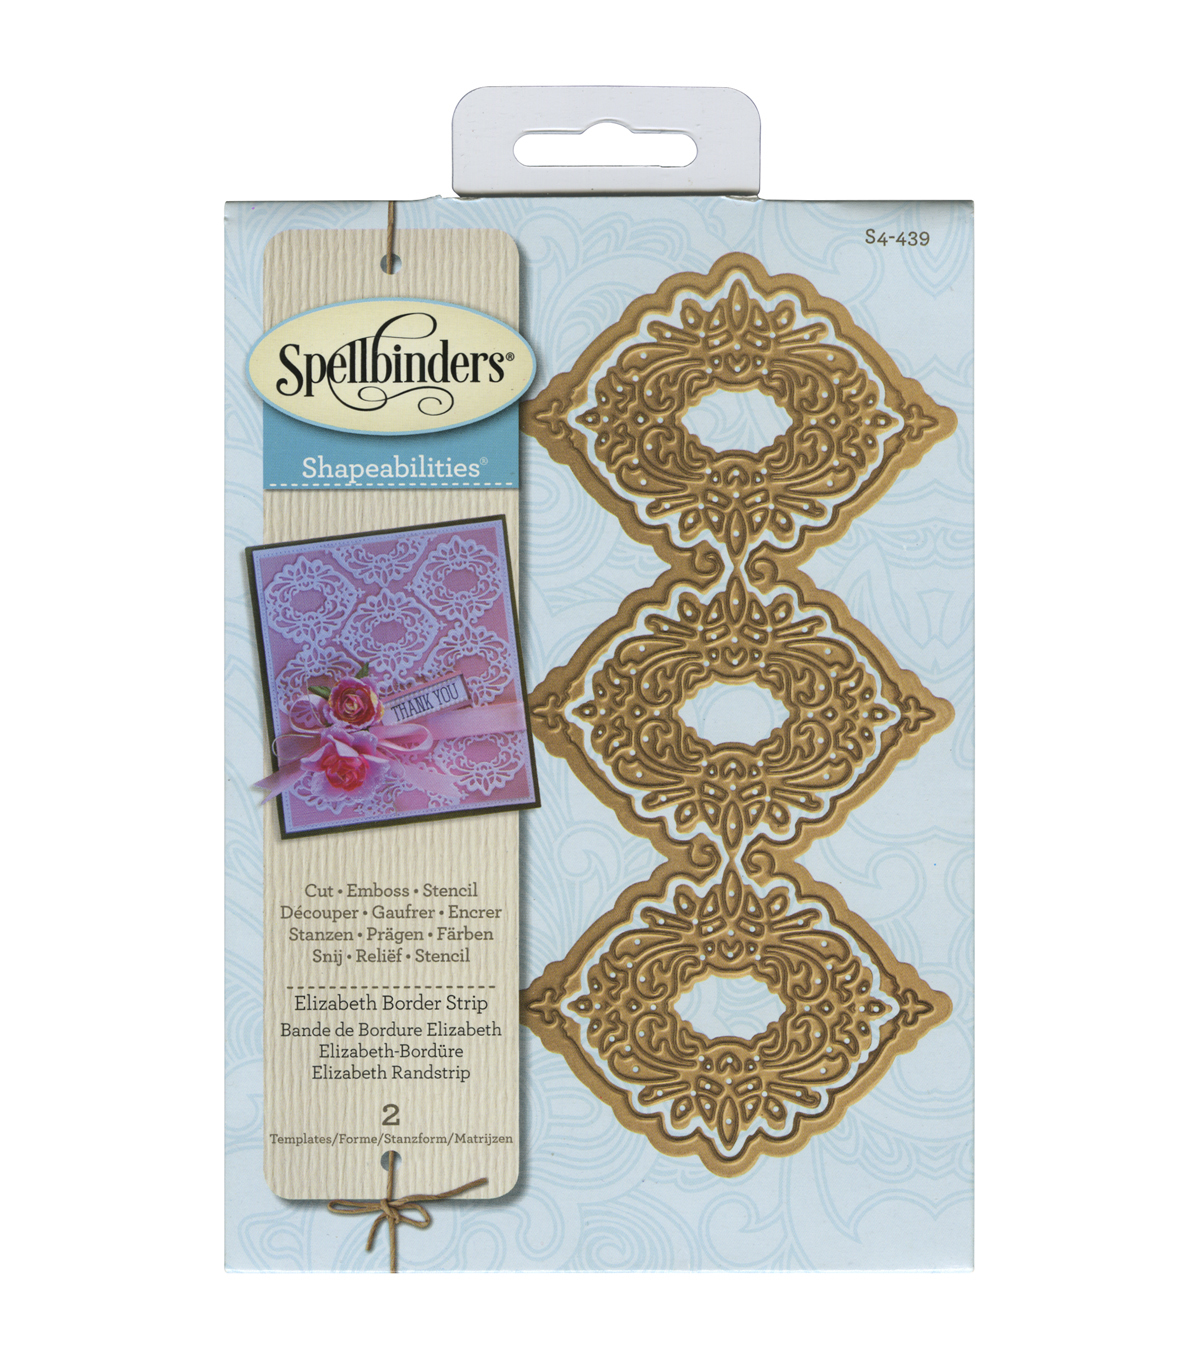 Spellbinders Shapeabilities Elizabeth Border Strip Dies